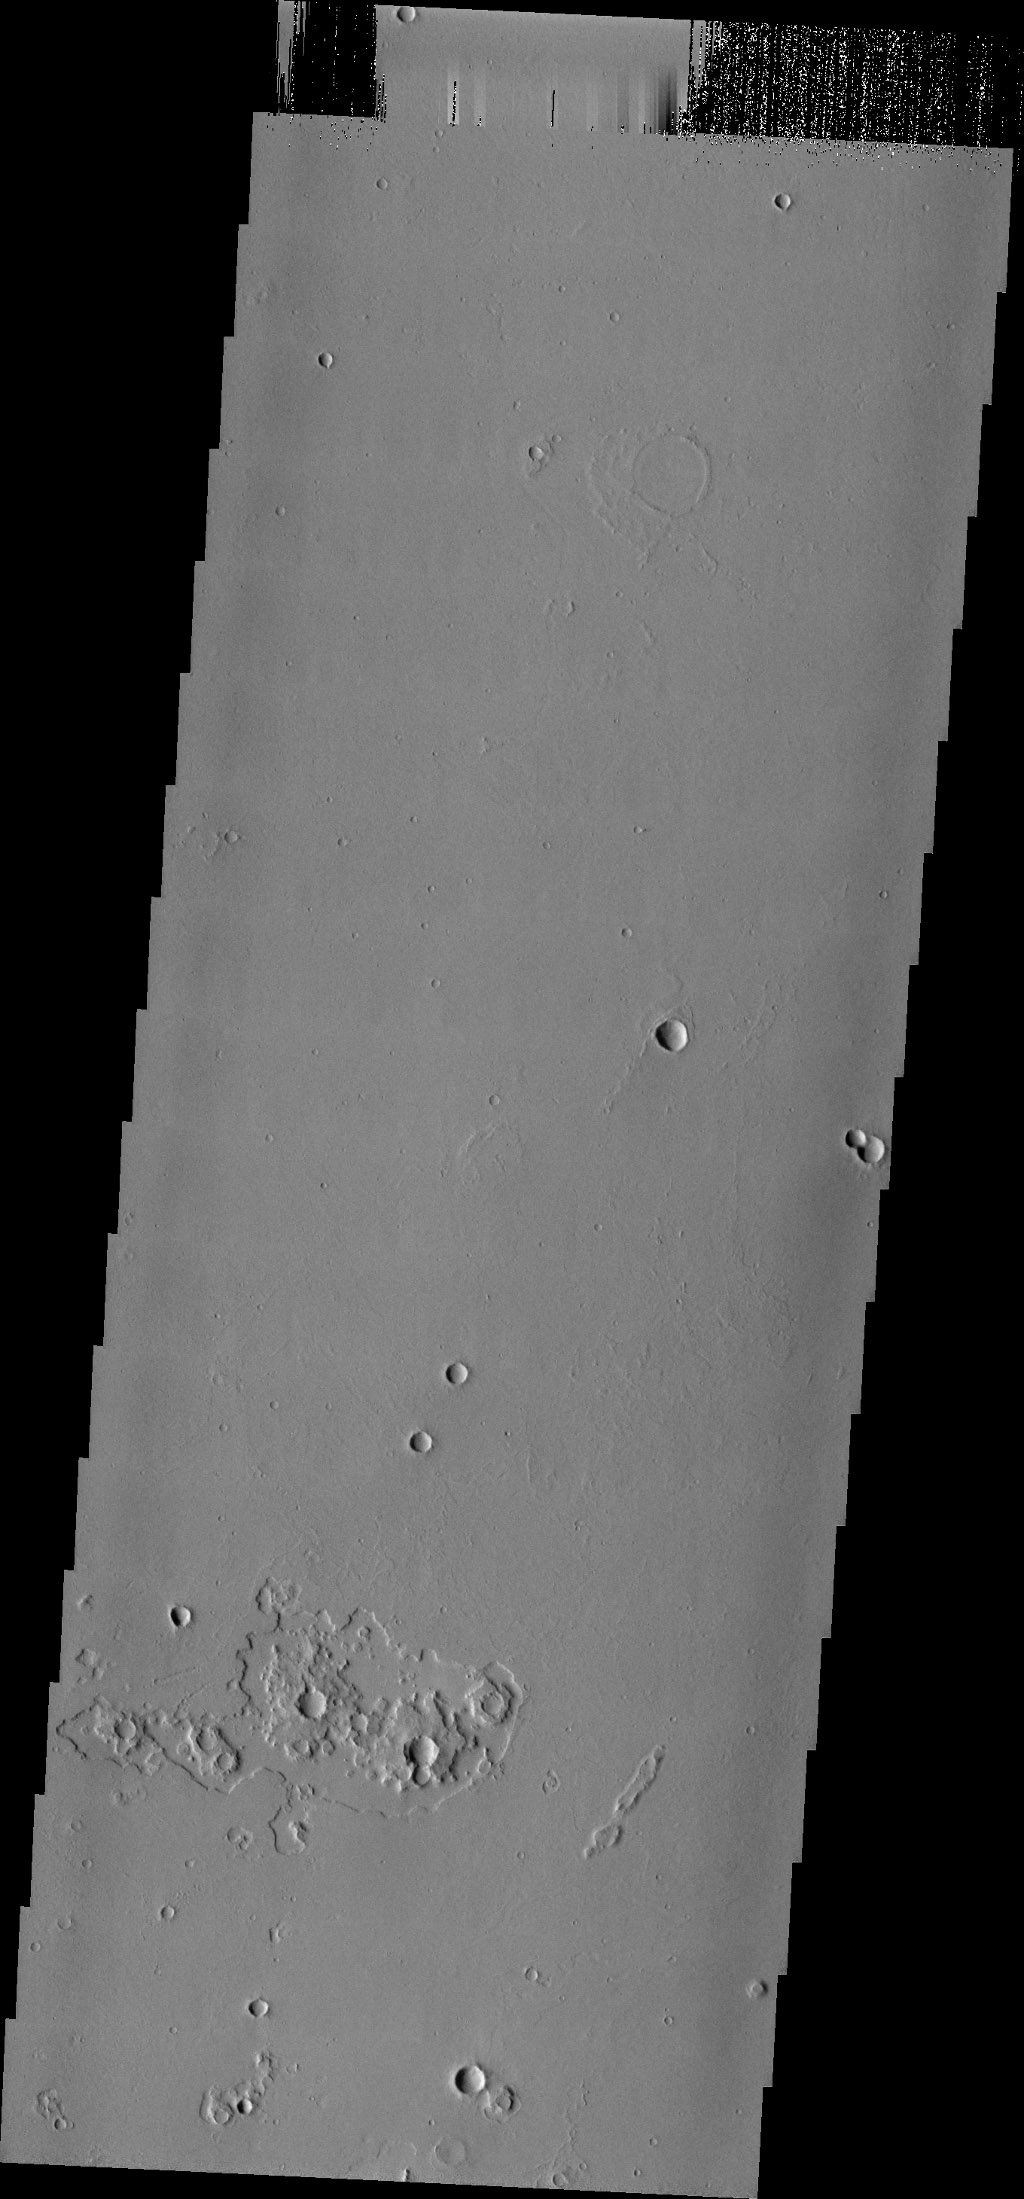 Do you see what I see in this image from NASA's Mars Odyssey spacecraft? The ejecta surrounding the small craters near the bottom of this image look like interlocking gears.